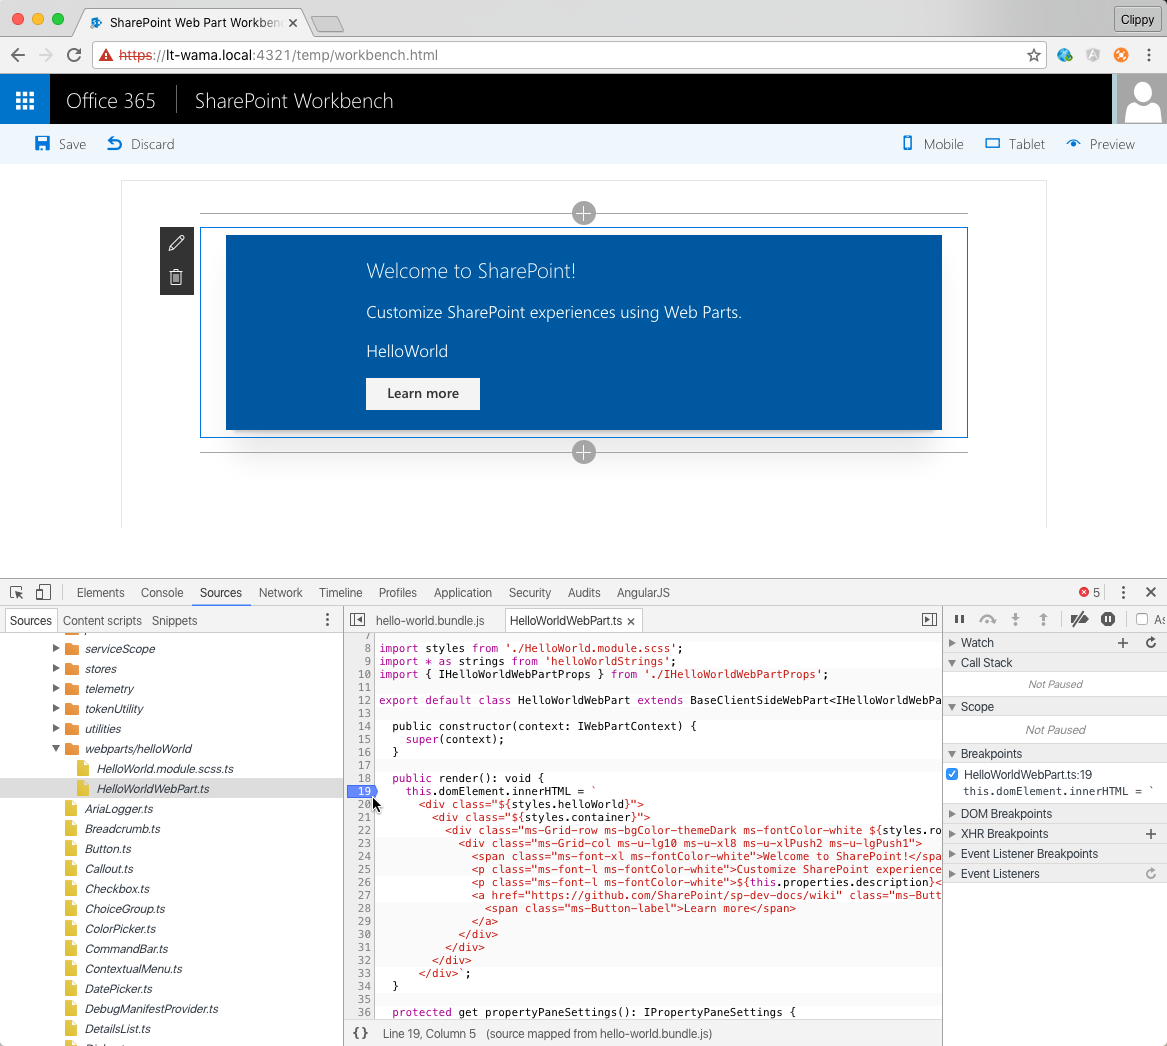 Breakpoint set in Chrome developer tools on the original SharePoint Framework source file